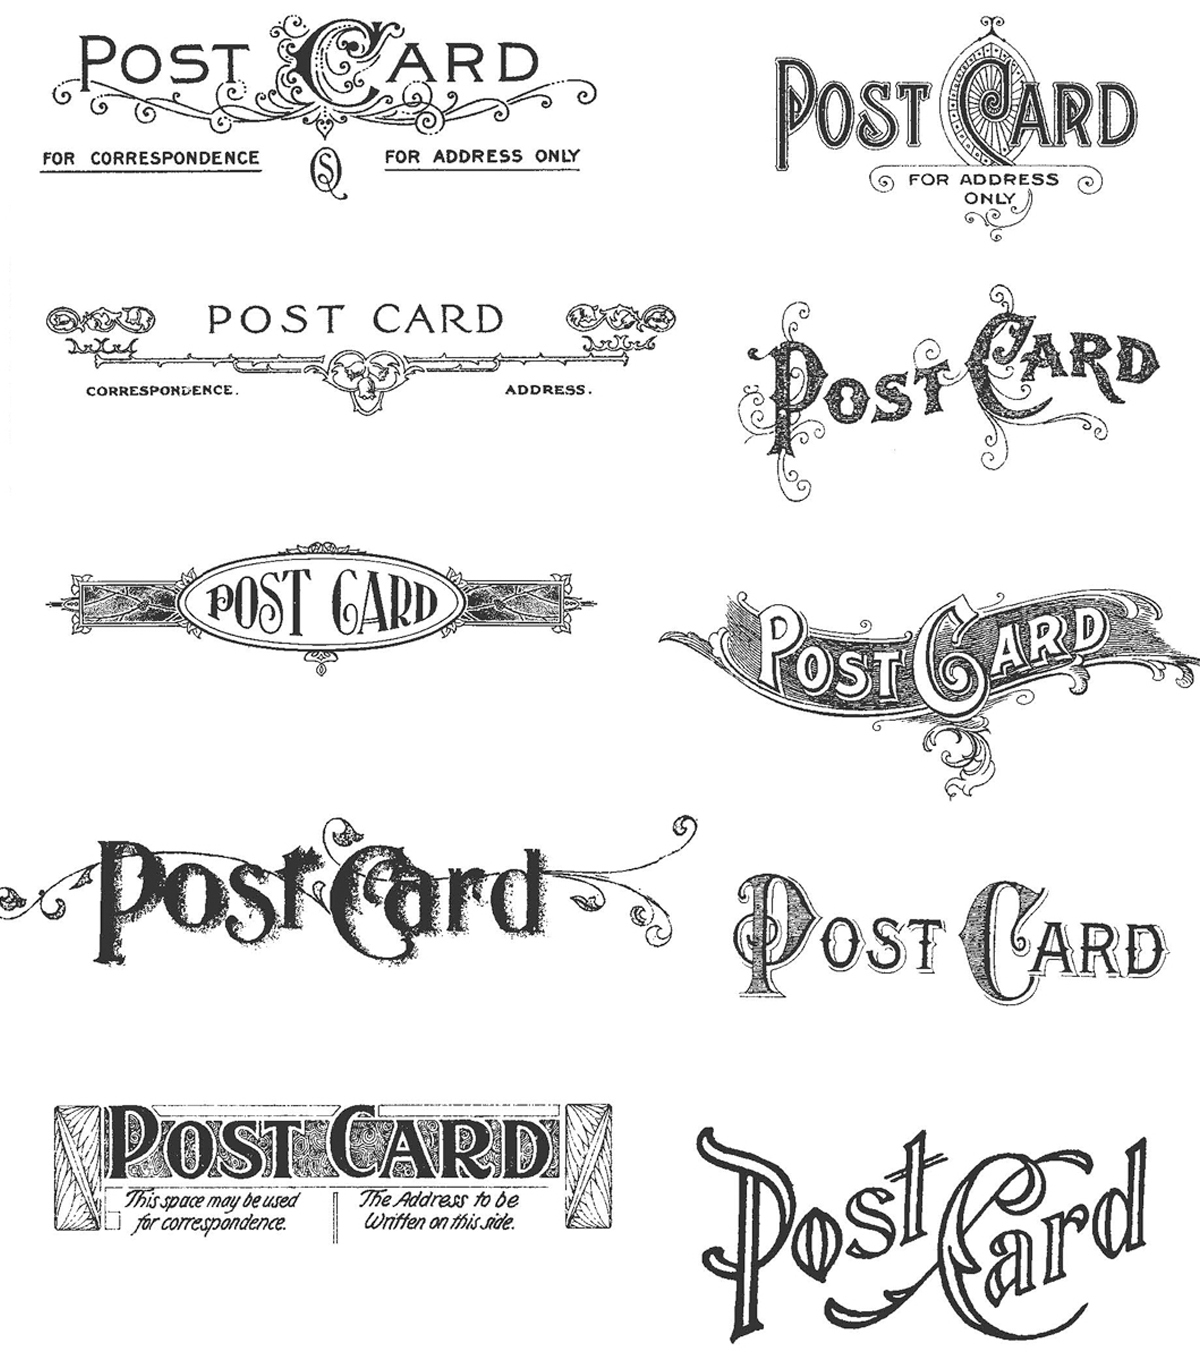 Posh Tim Holtz Cling Rubber Stamp Tim Holtz Cling Rubber Stamp Joann Forever Postcard Stamps How Much Are Postcard Stamps 2017 inspiration Post Card Stamps